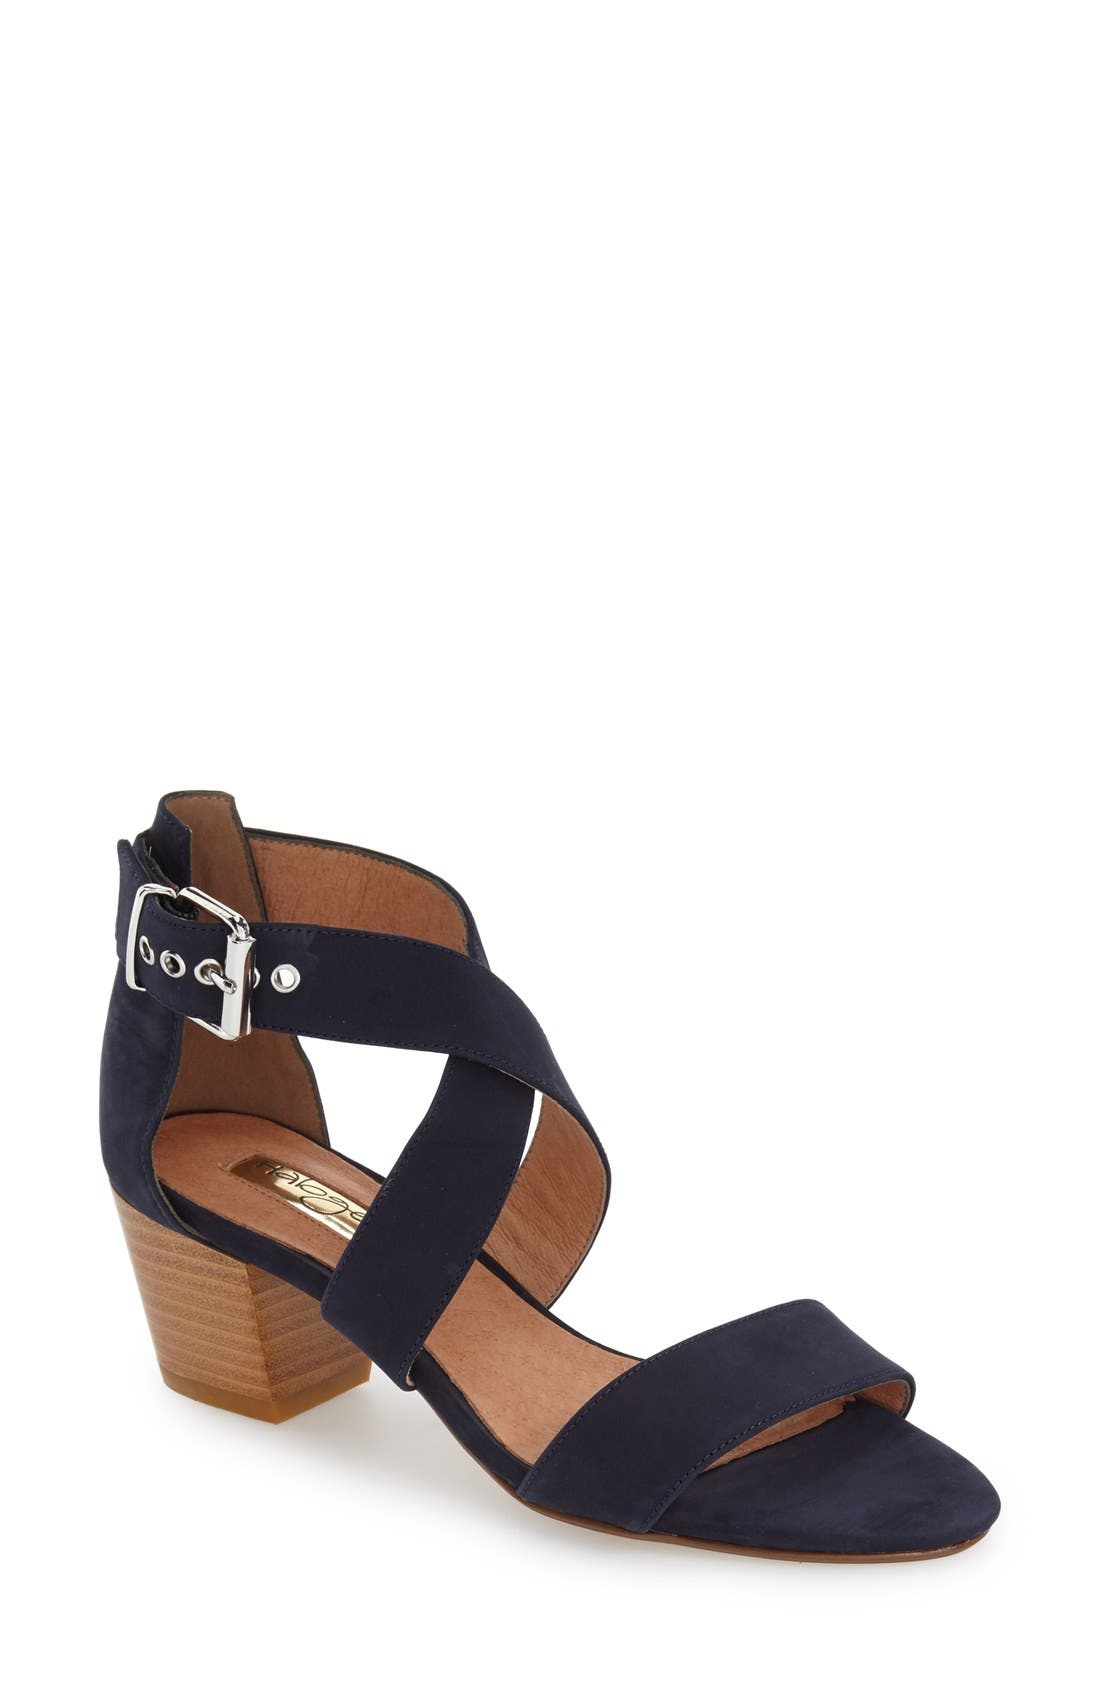 Alternate Image 1 Selected - Halogen 'Rena' Crisscross Strap Sandal (Women)